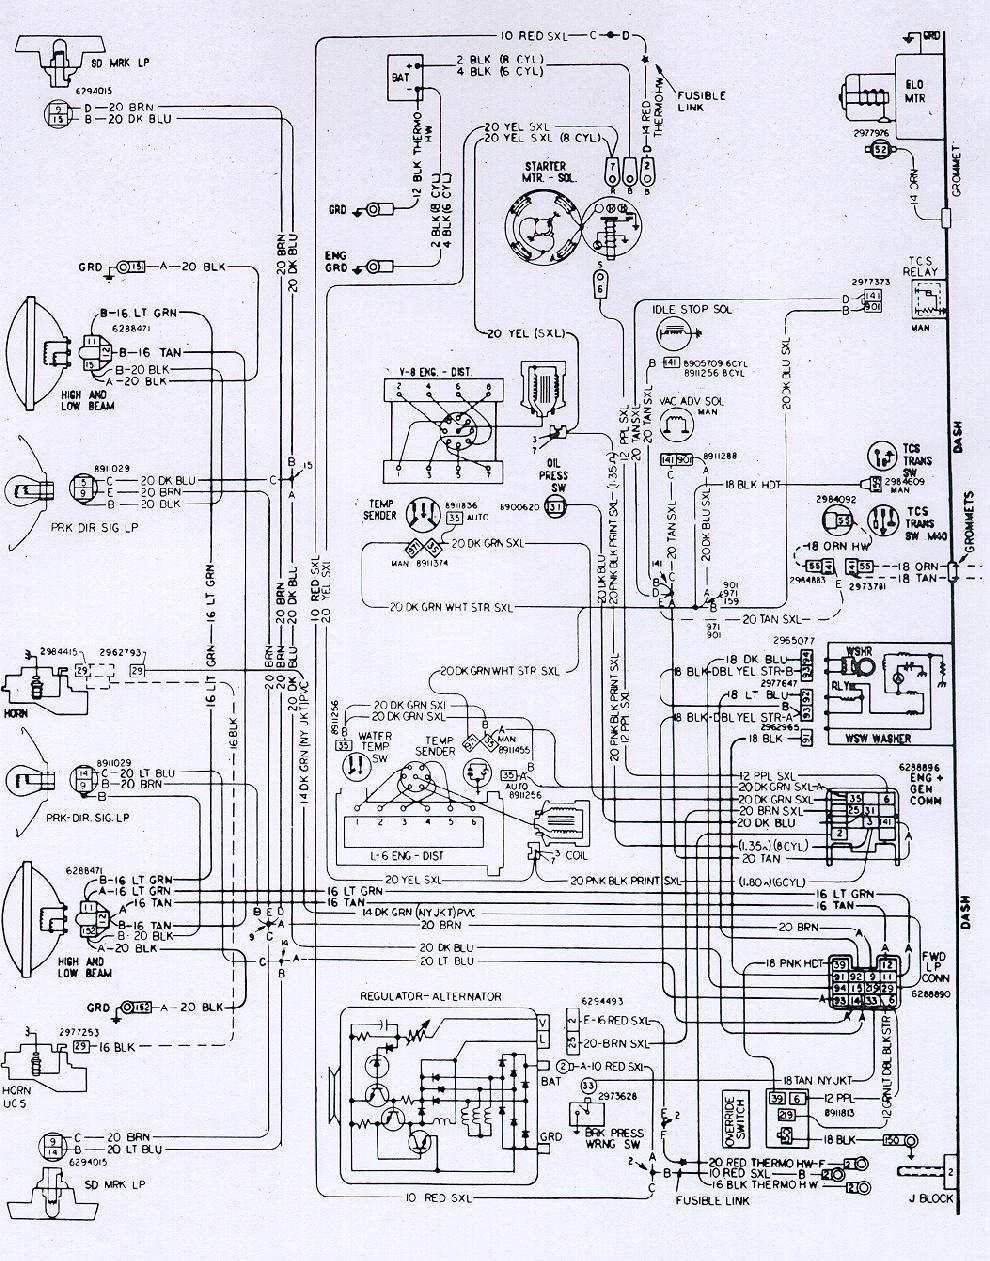 medium resolution of 1979 camaro wiring diagram download simple wiring post 1998 camaro wiring harness diagram 1979 camaro wiring diagram download